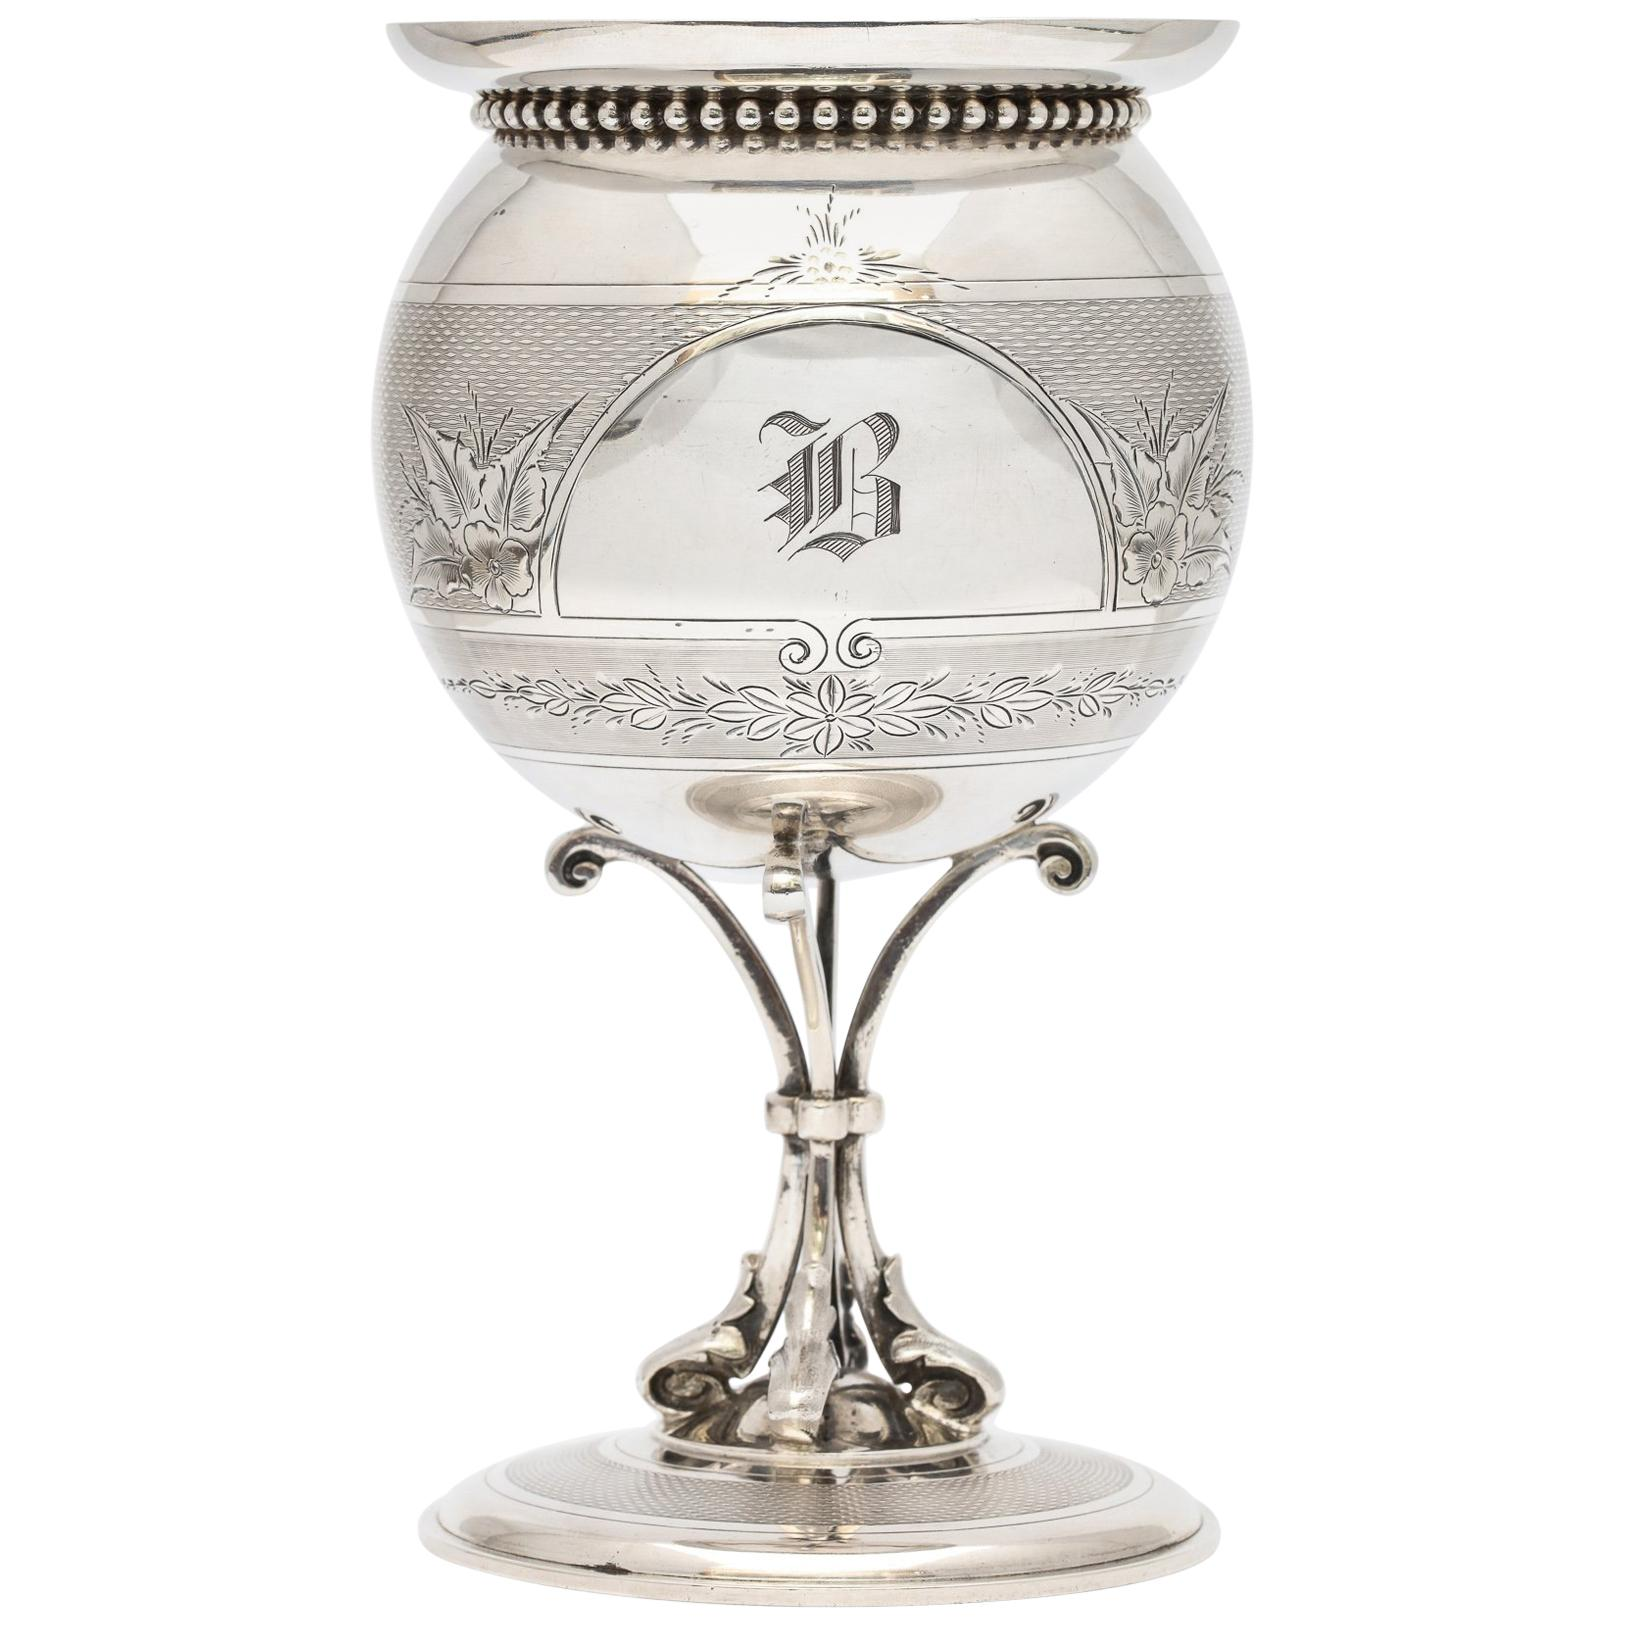 American, Neoclassical Coin Silver Vase by Gorham